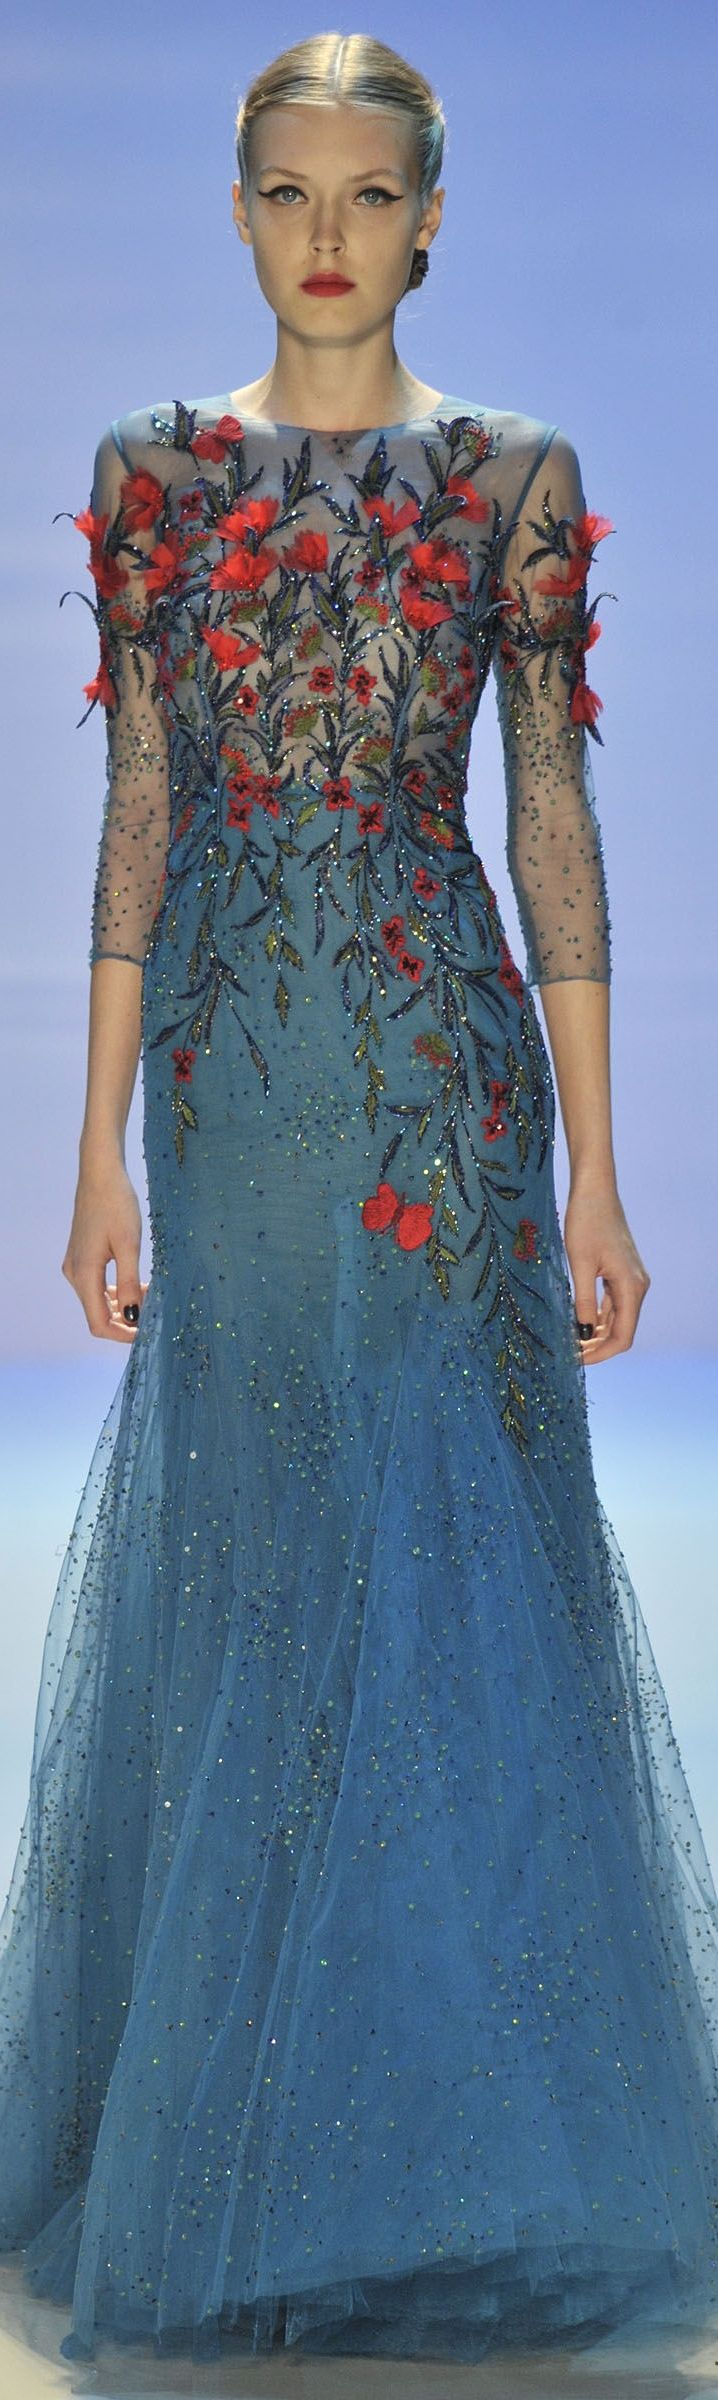 ...Georges Hobeika Couture F/W 2014-2015 http://hermansfashion.wordpress.com/